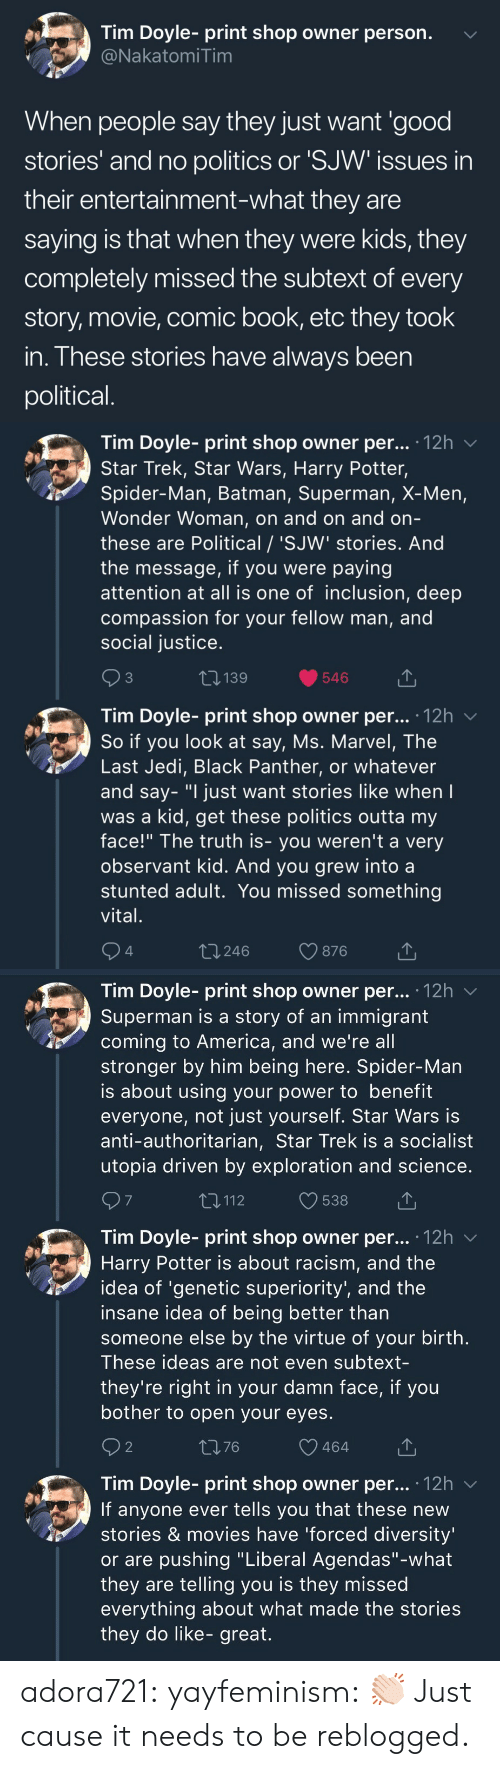 """Socialist: Tim Doyle- print shop owner person.  NakatomiTim  When people say they just want 'good  stories' and no politics or 'SJW issues in  their entertainment-what they are  saying is that when they were kids, they  completely missed the subtext of every  story, movie, comic book, etc they took  in. These stories have always been  political   Tim Doyle- print shop owner per... 12h v  Star Trek, Star Wars, Harry Potter,  Spider-Man, Batman, Superman, X-Men,  Wonder Woman, on and on and orn  these are Political / 'SJW' stories. And  the message, if you were paying  attention at all is one of inclusion, deep  compassion for your fellow man, and  social justice  3  139  546  Tim Dovle-print shop owner per... 12h  So if you look at say, Ms. Marvel, The  Last Jedi, Black Panther, or whatever  and say- """"I just want stories like when  was a kid, get these politics outta my  face!"""" The truth is- you weren't a very  observant kid. And you grew into a  stunted adult. You missed something  vital  4  t 246  876   Tim Doyle- print shop owner per... '12h v  Superman is a story of an immigrant  coming to America, and we're all  stronger by him being here. Spider-Man  is about using your power to benefit  everyone, not just yourself. Star Wars is  anti-authoritarian, Star Trek is a socialist  utopia driven by exploration and science  7  T,112  538  Tim Doyle- print shop owner per... .12h  Harry Potter is about racism, and the  idea of 'genetic superiority', and the  insane idea of being better than  someone else by the virtue of your birth  These ideas are not even subtext-  they're right in your damn face, if you  bother to open your eyes  2  1376  464  Tim Doyle- print shop owner per... 12h v  If anyone ever tells you that these new  stories & movies have 'forced diversity  or are pushing """"Liberal Agendas""""-what  they are telling you is they missed  everything about what made the stories  they do like- great. adora721: yayfeminism: 👏🏻 Just cause it needs to be reblogged."""